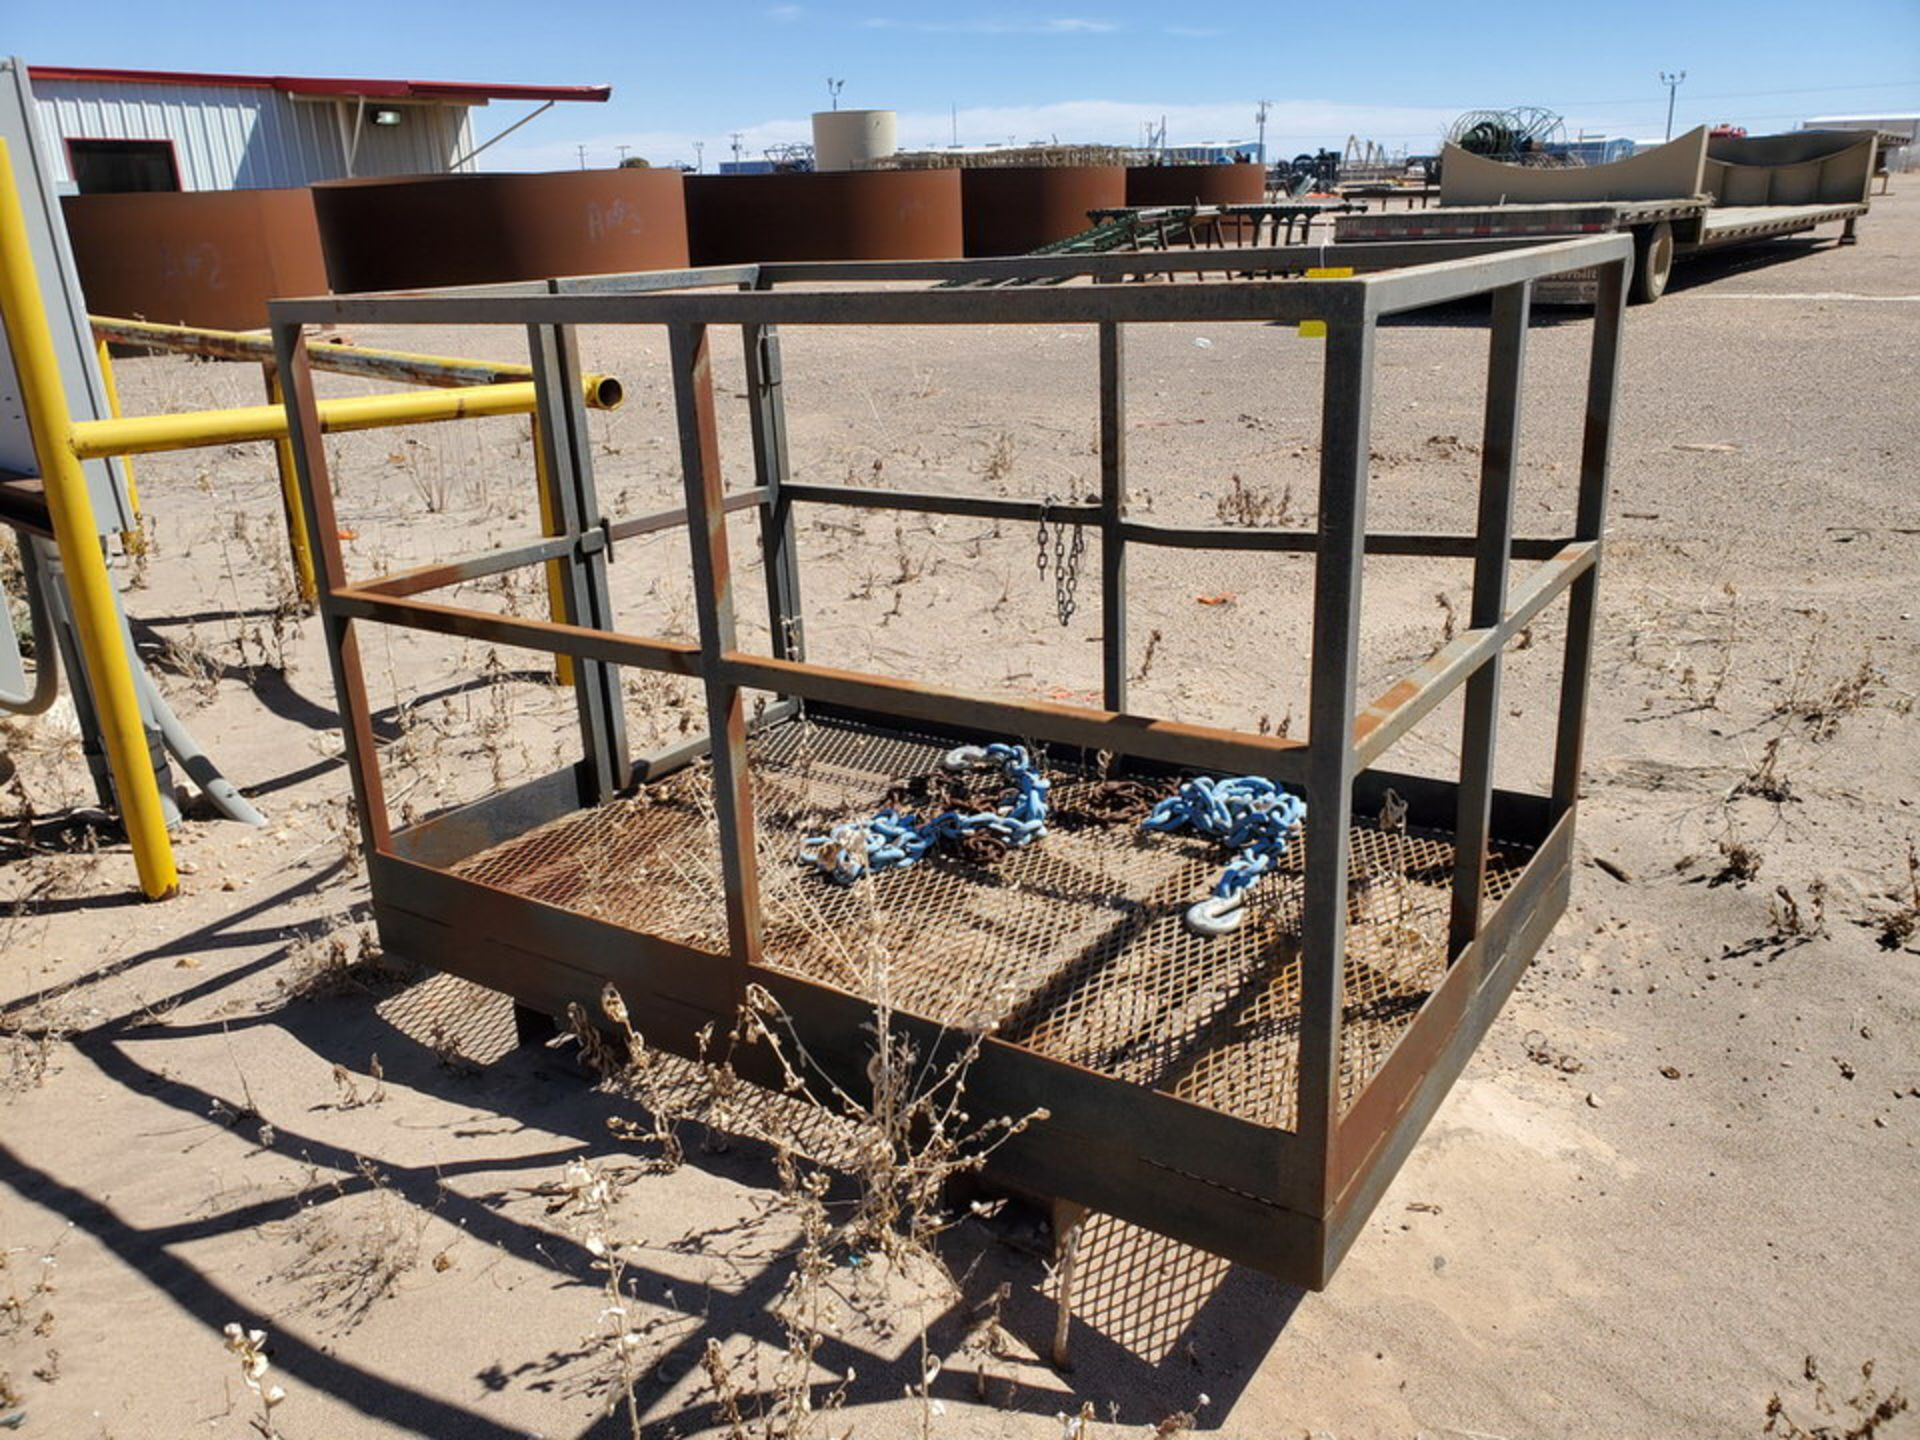 """Forklift Stl Work Basket 72"""" x 48"""" x 50""""H; W/ Lifting Chains - Image 5 of 7"""